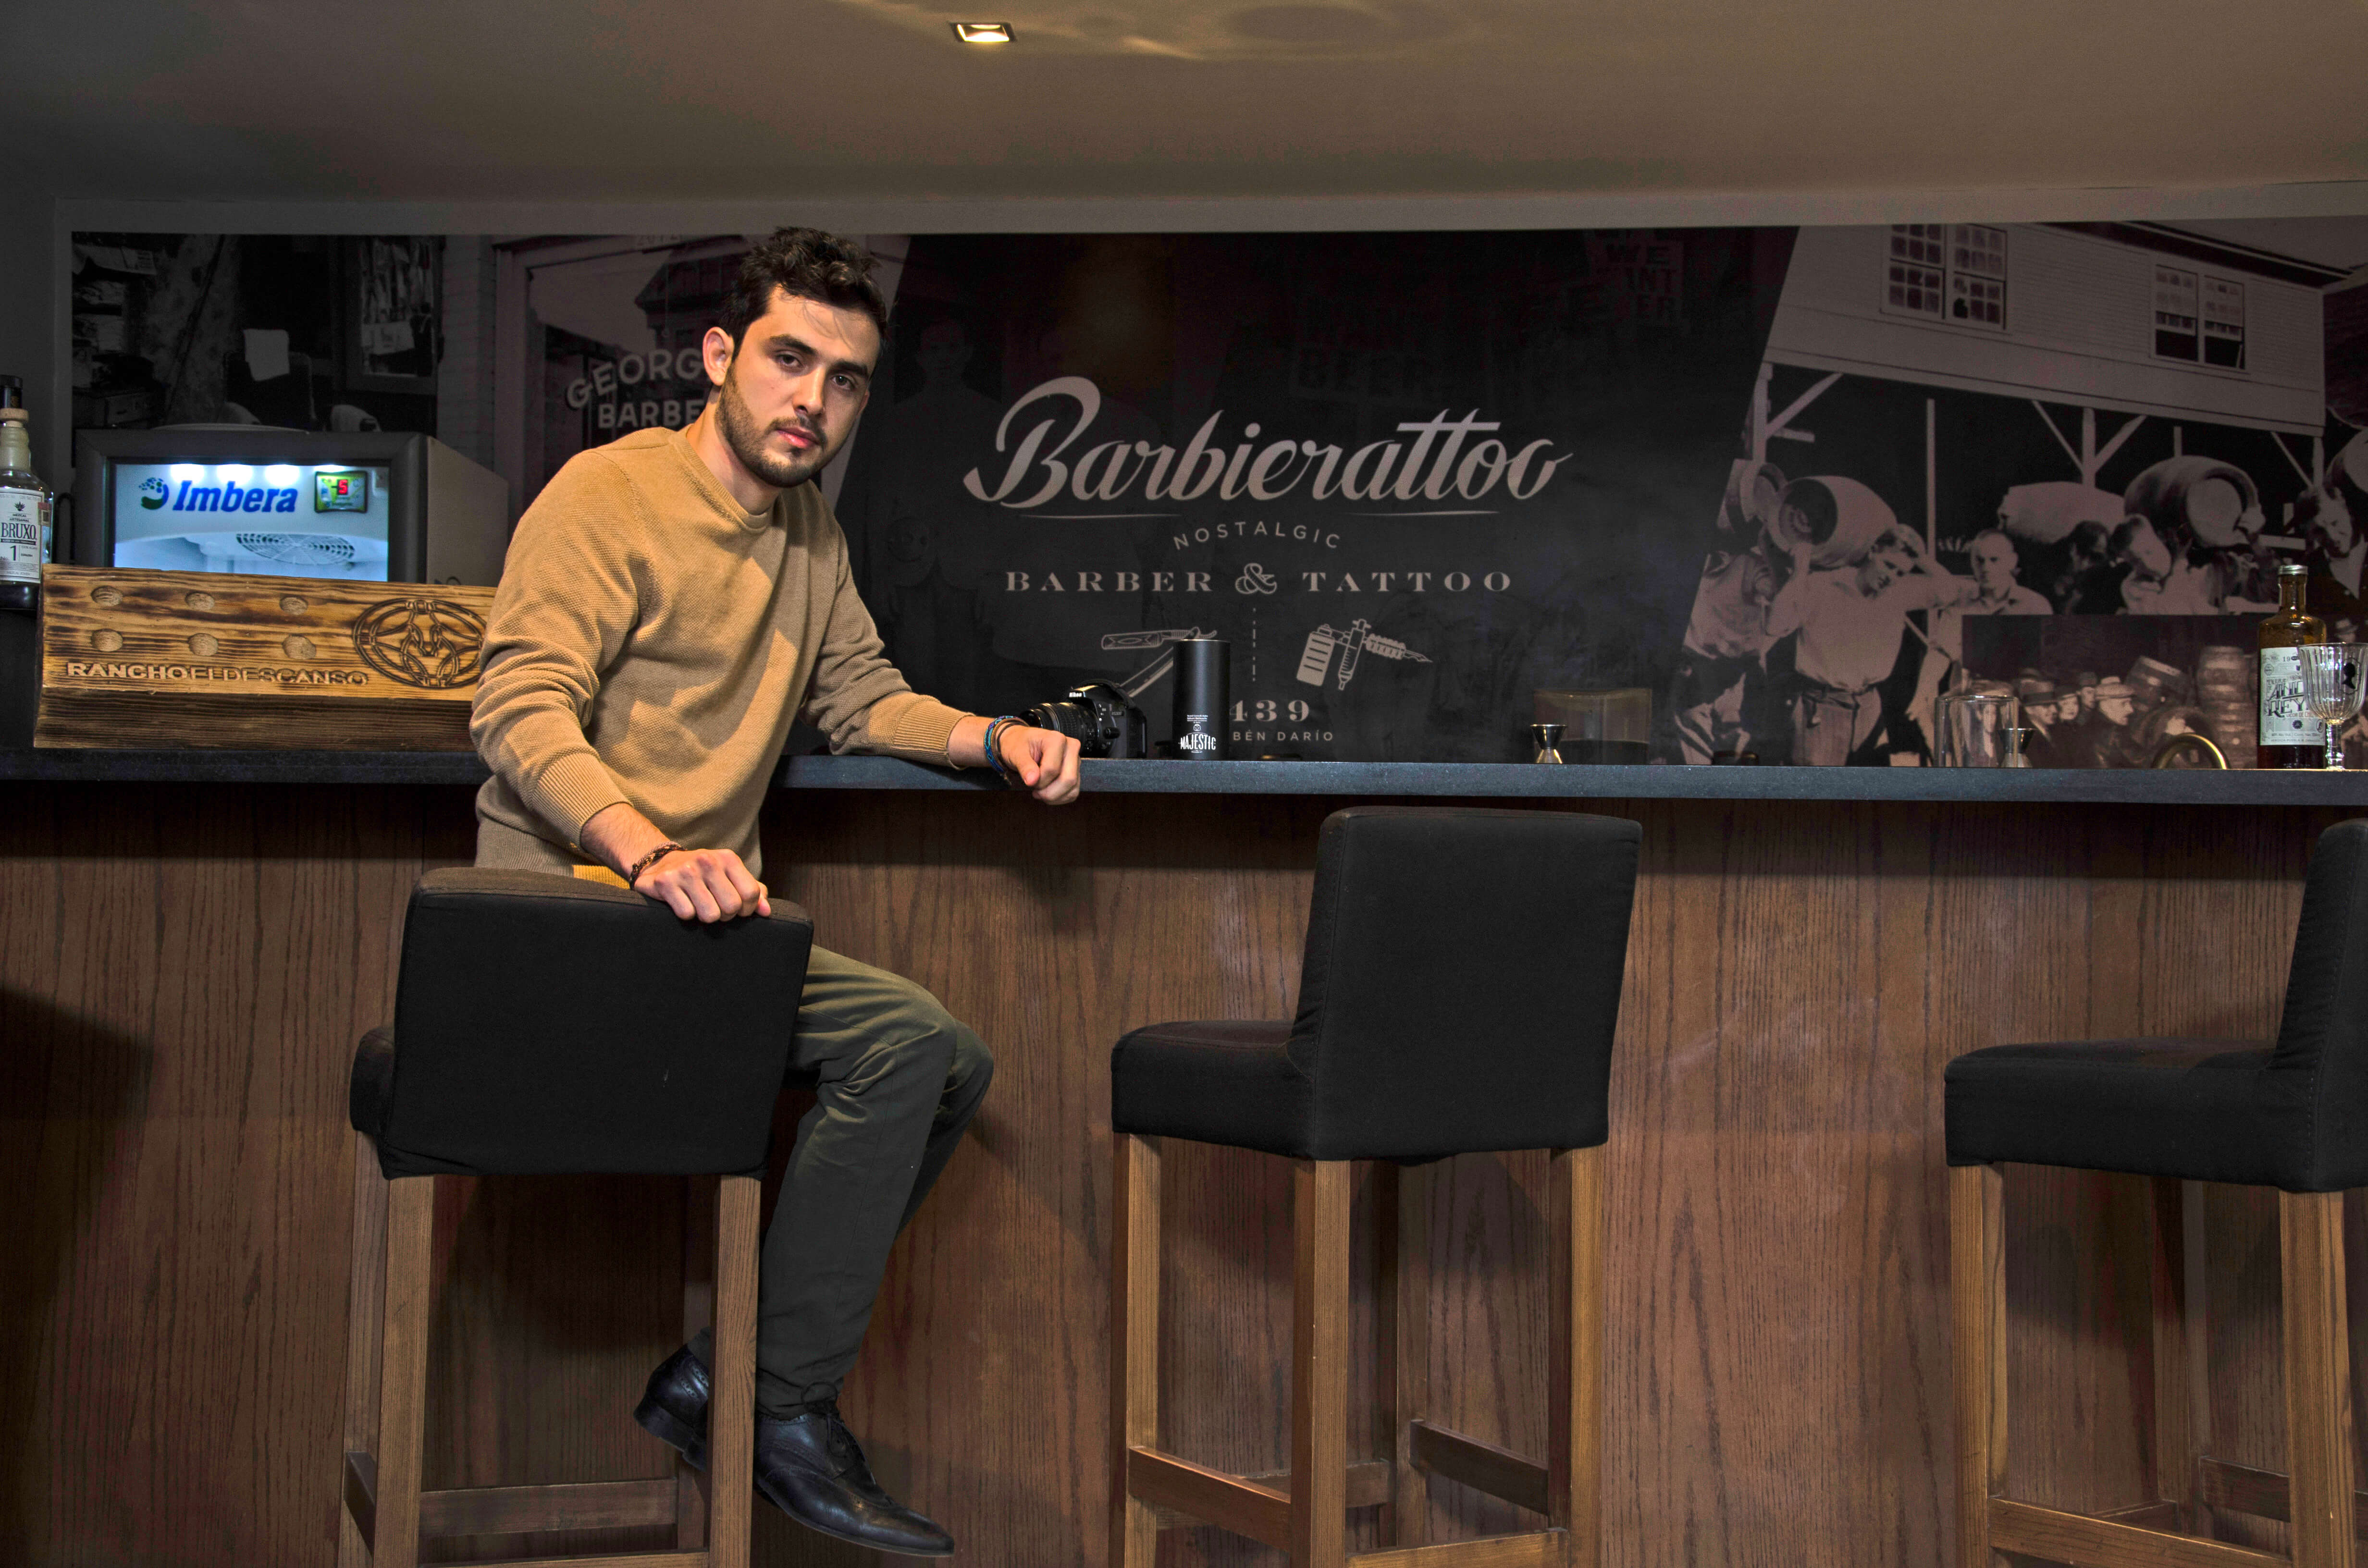 barbieratto-alexjumper-bar